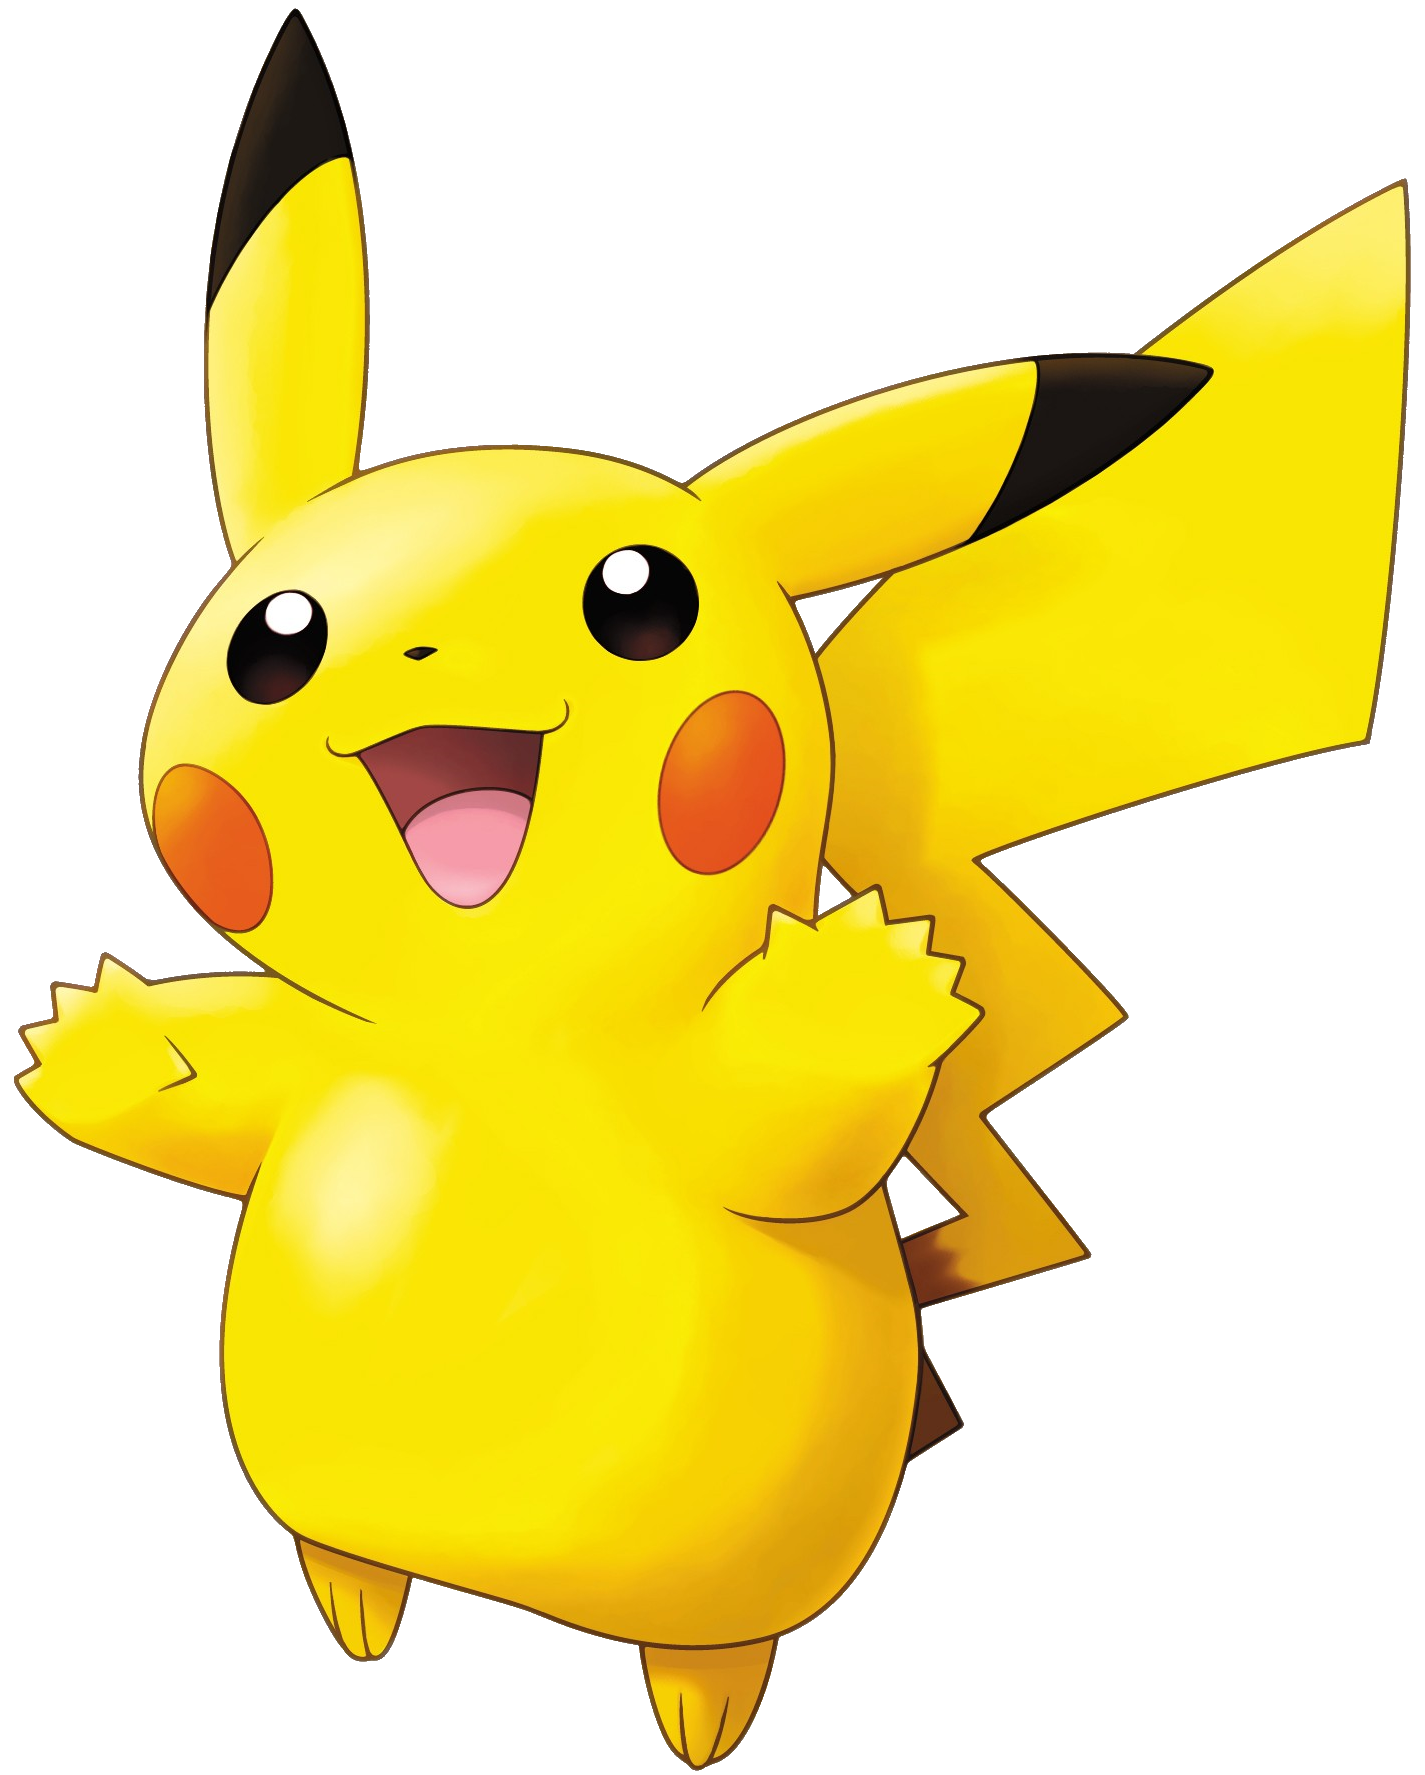 Pokemon clipart png. Image purepng free transparent